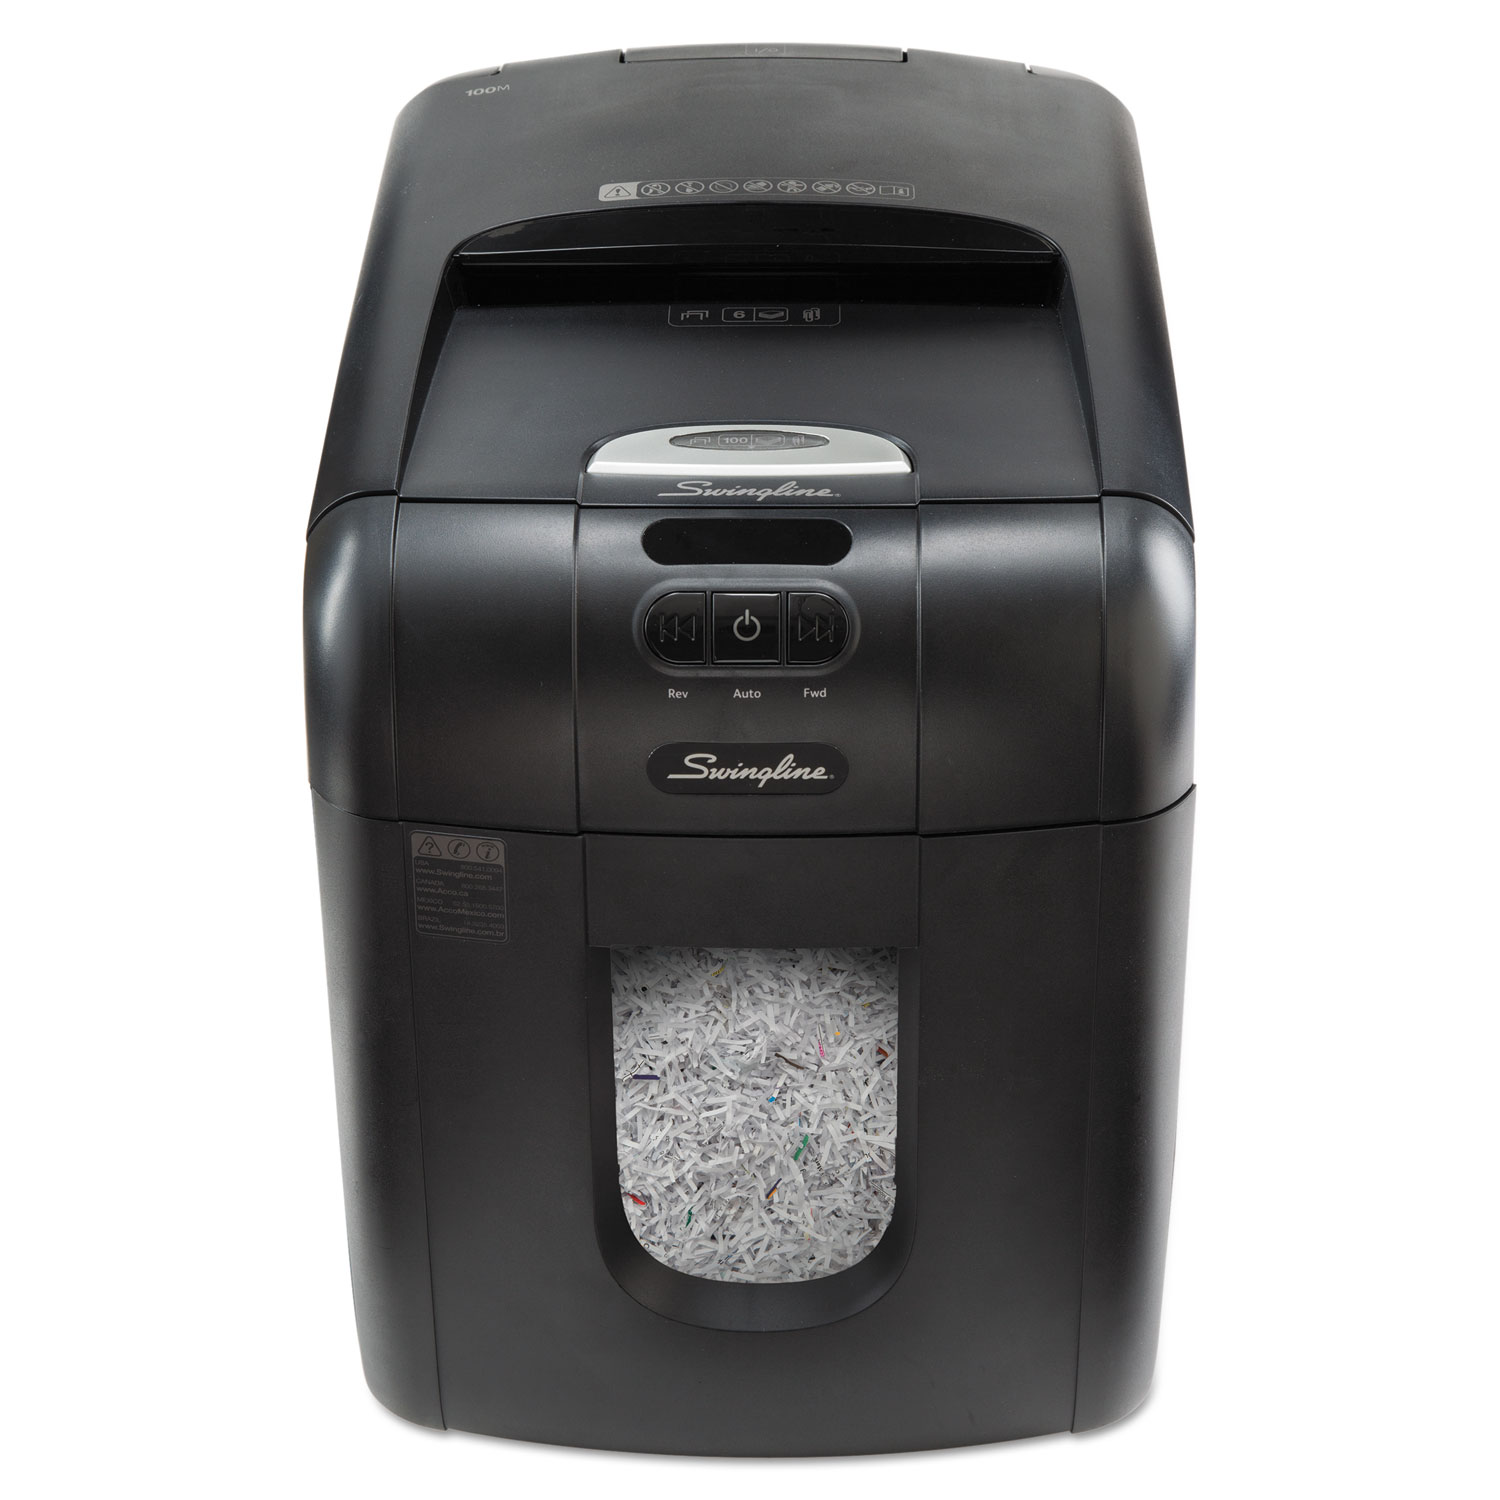 Stack And Shred 130m Auto Feed Micro Cut Shredder By